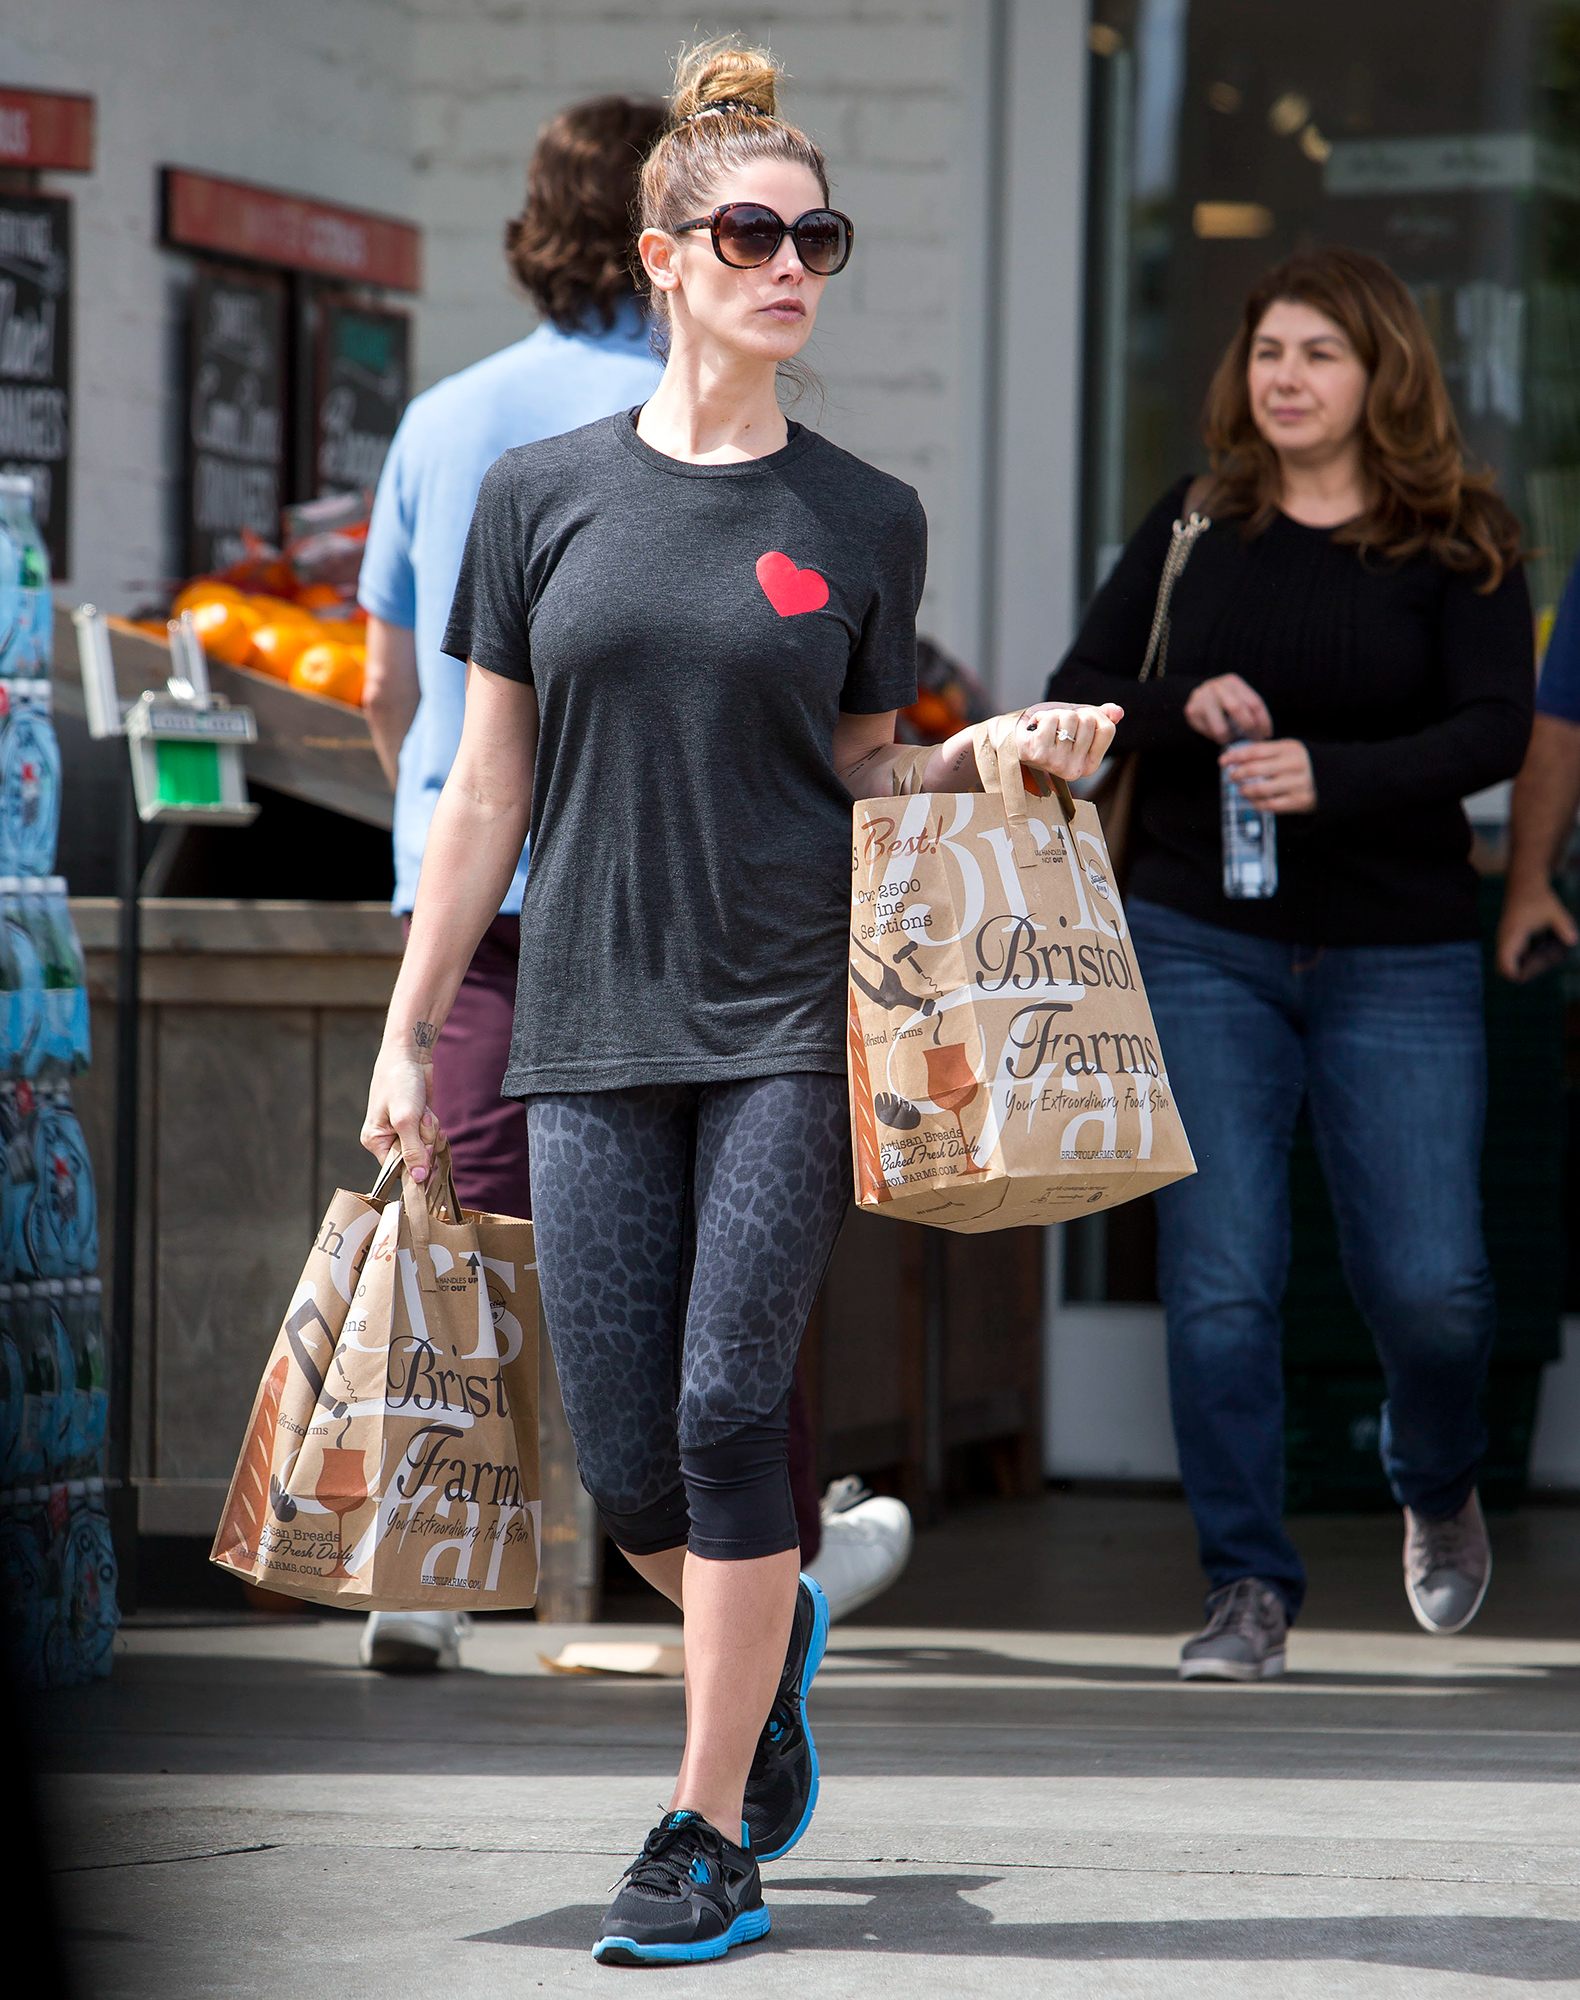 Ashley Greene wears her heart on her t-shirt as she picks up groceries at 'Bristol Farms' in Beverly Hills,CA.